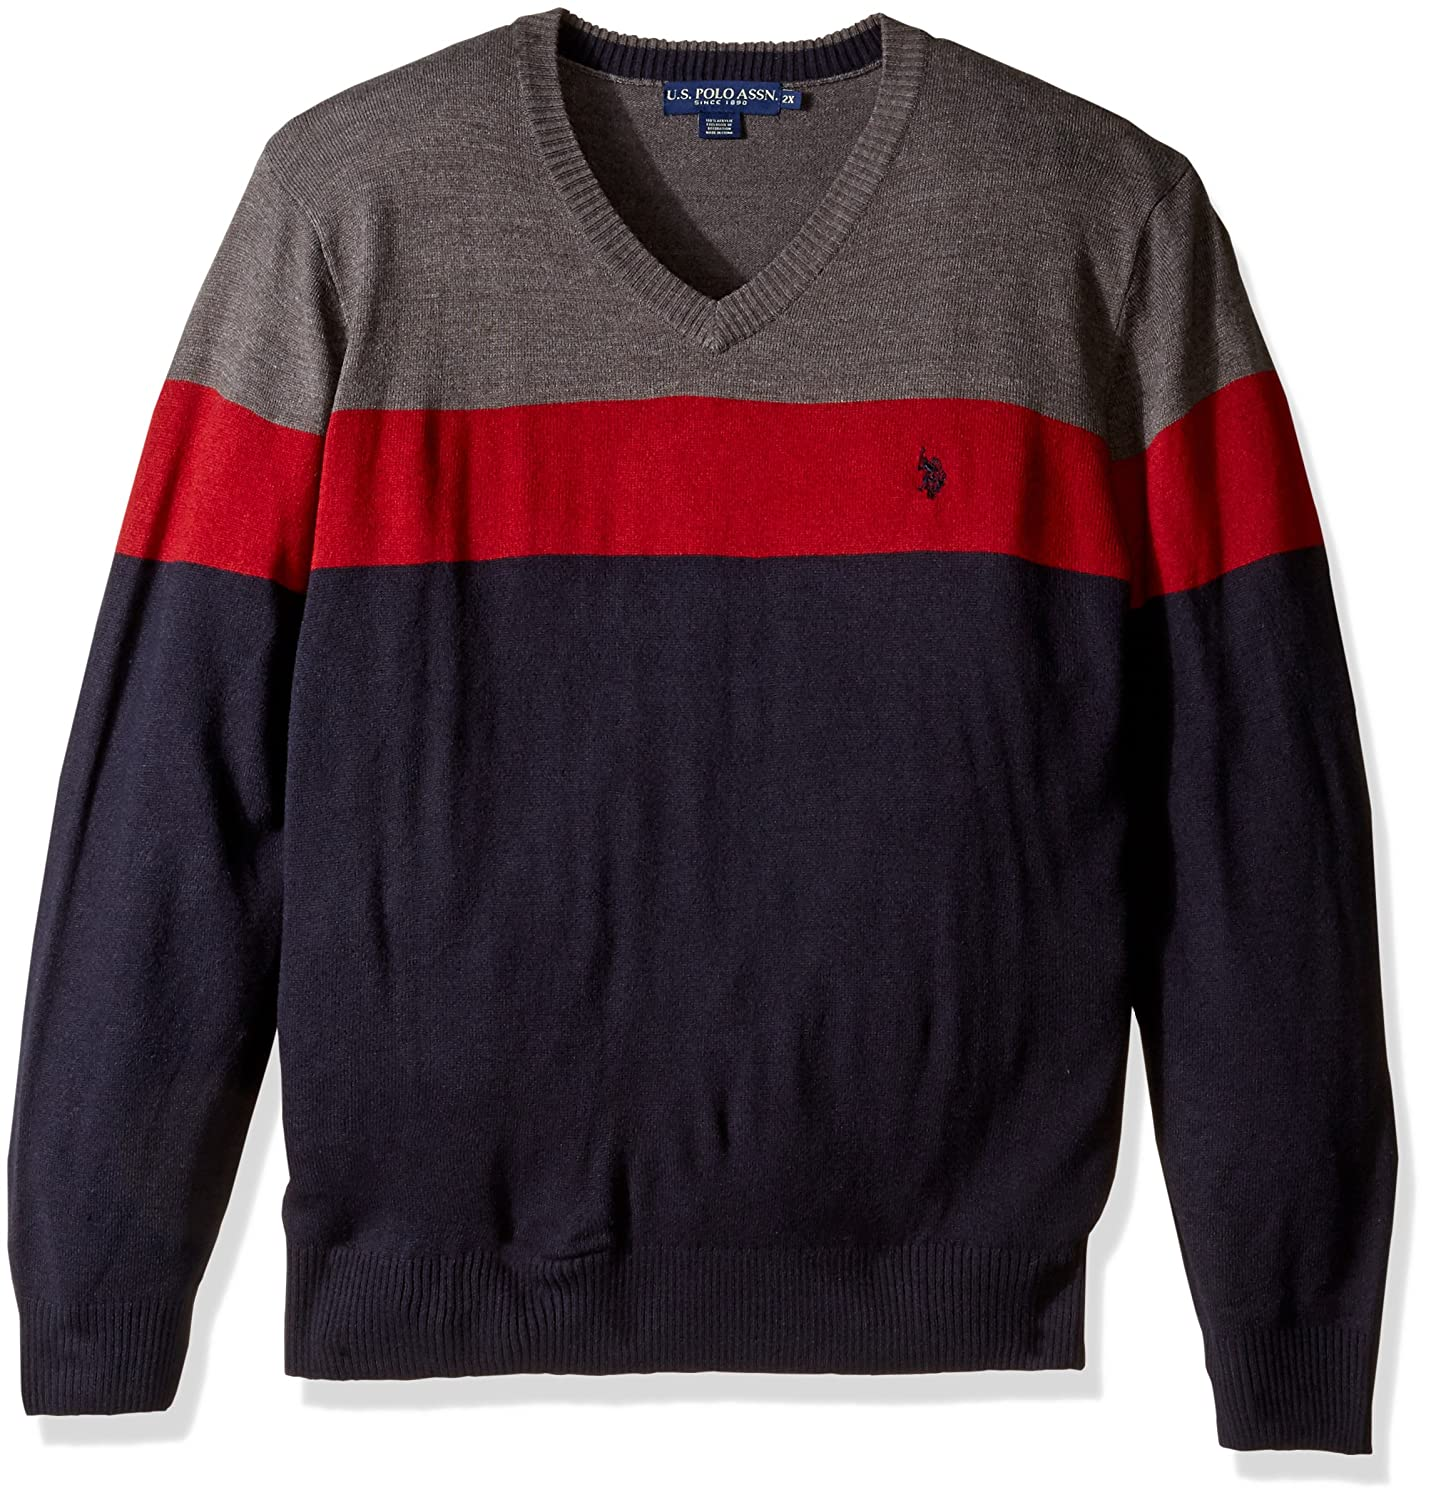 U.S. Polo Assn. Men's All Over Stripe V-Neck Sweater ACUS45474